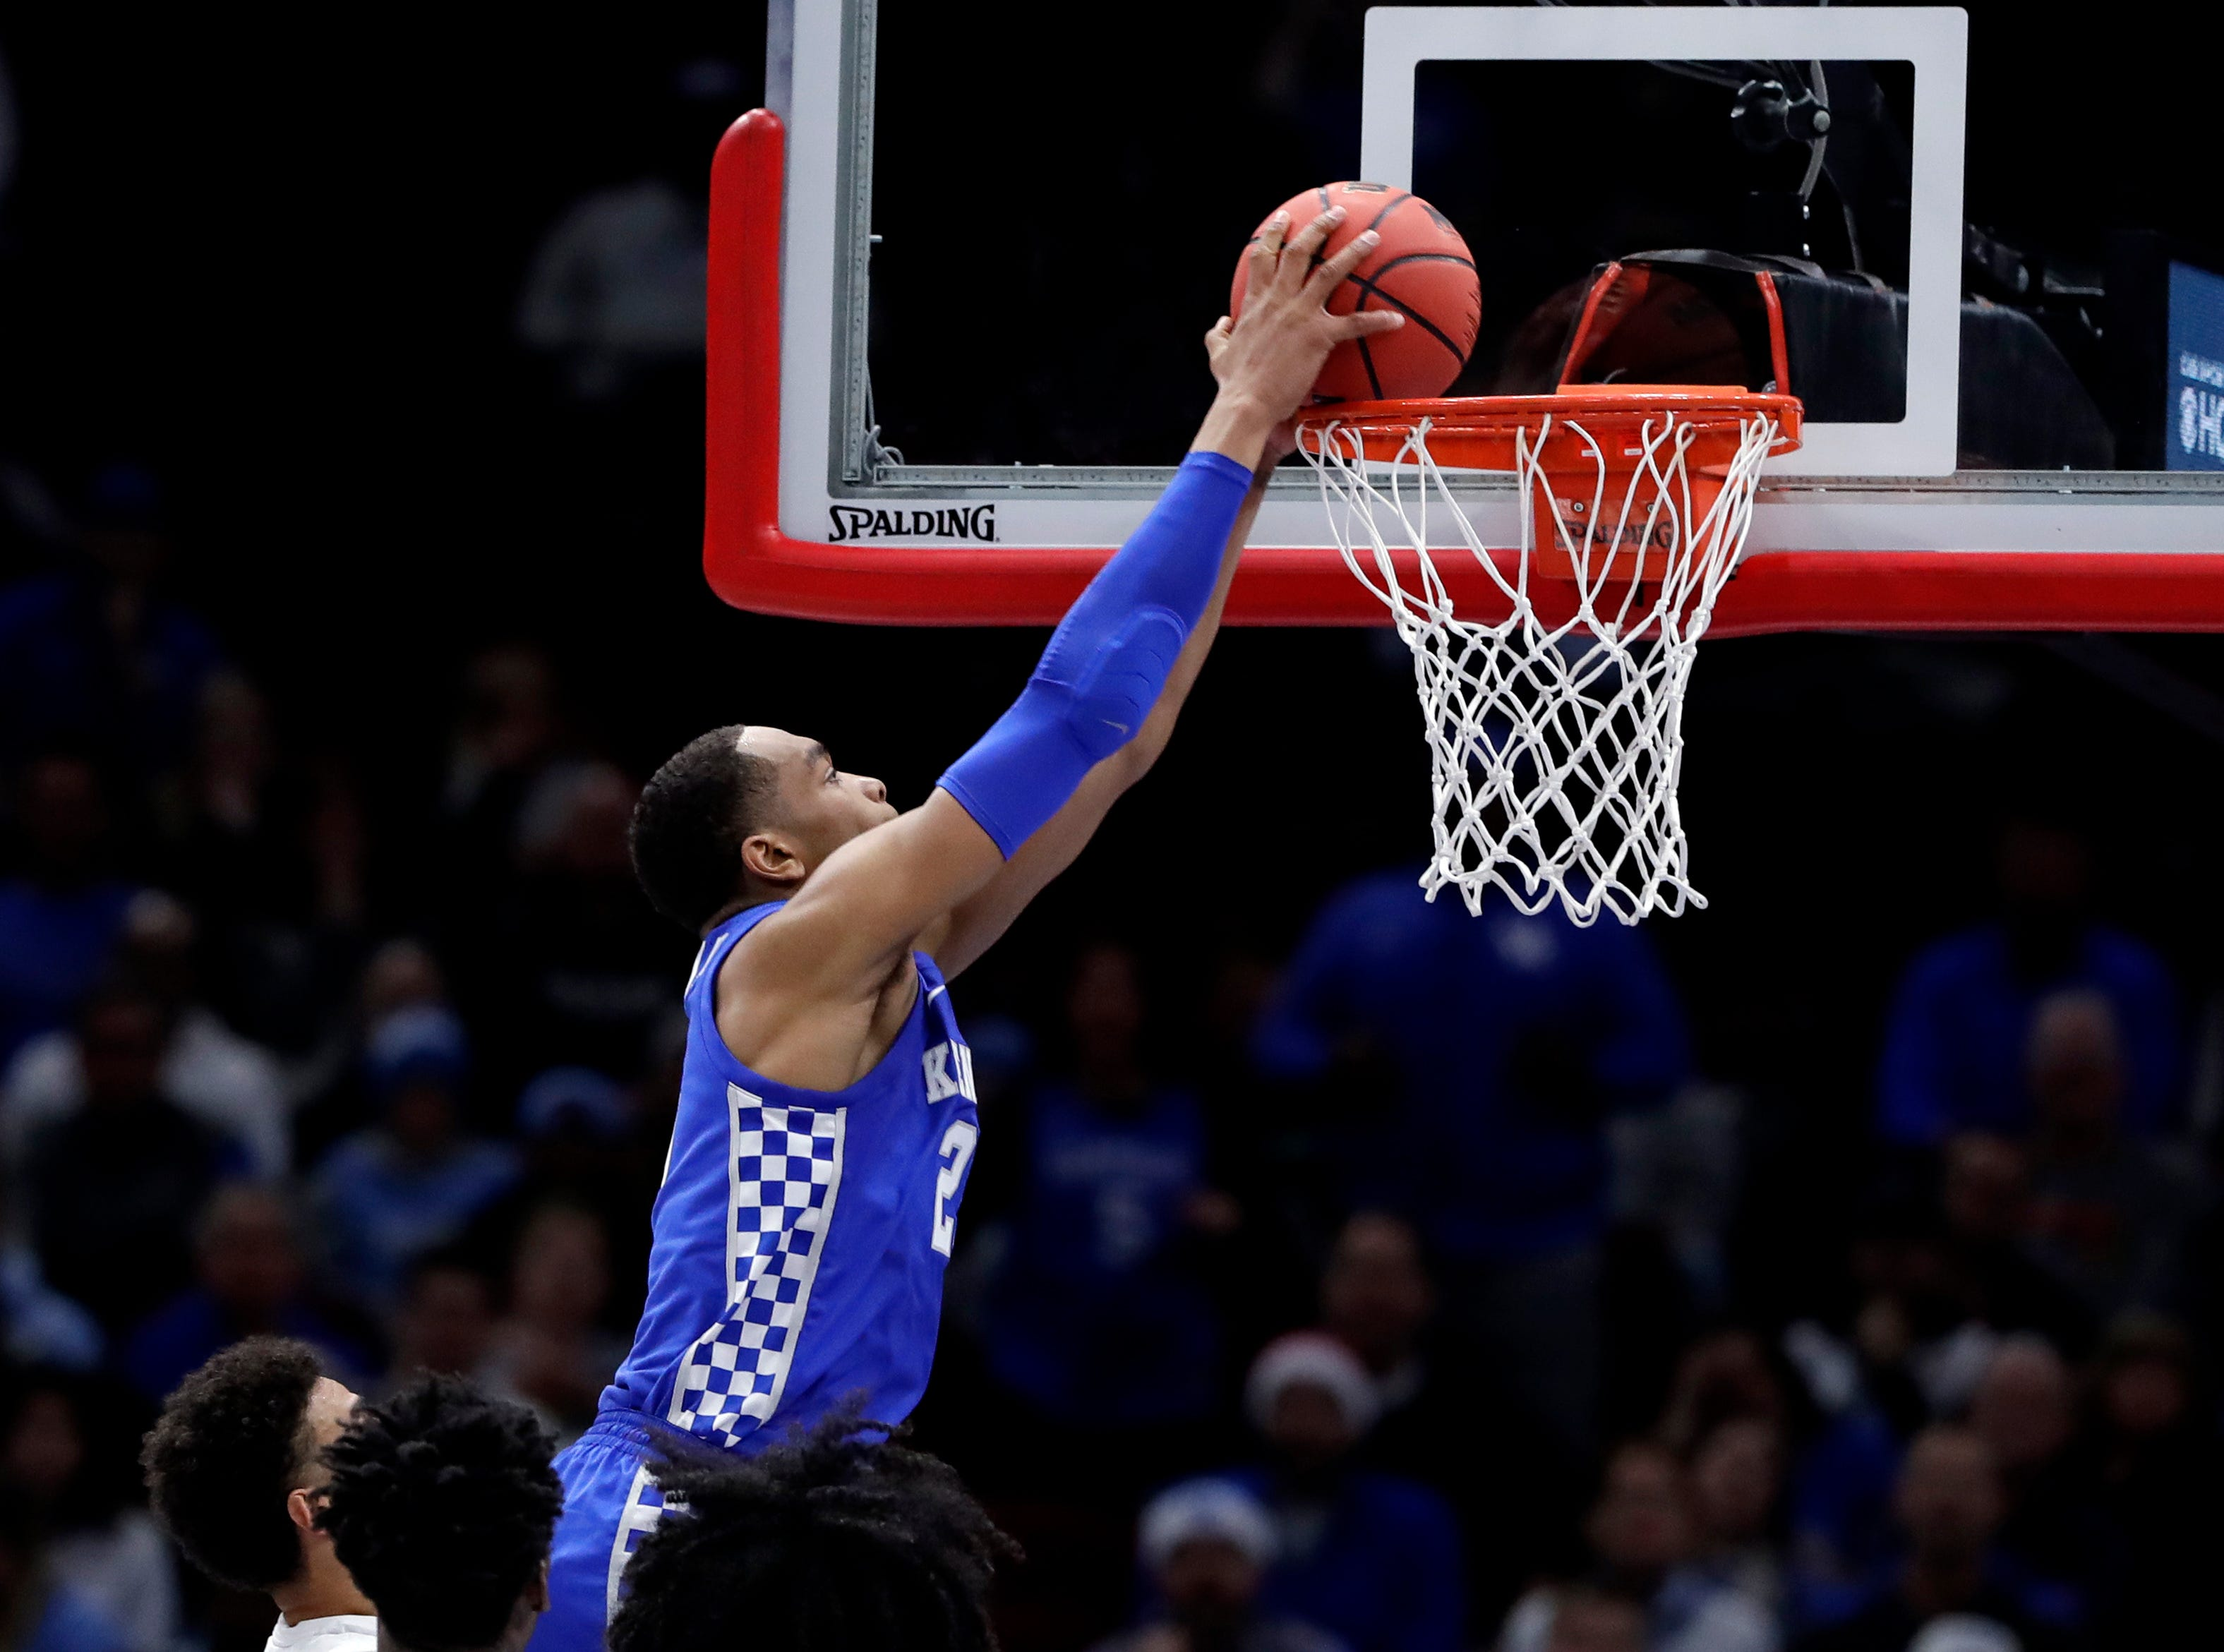 Kentucky forward PJ Washington Jr., dunks against North Carolina during the first half of an NCAA college basketball game in the fifth annual CBS Sports Classic, Saturday, Dec. 22, 2018, in Chicago.